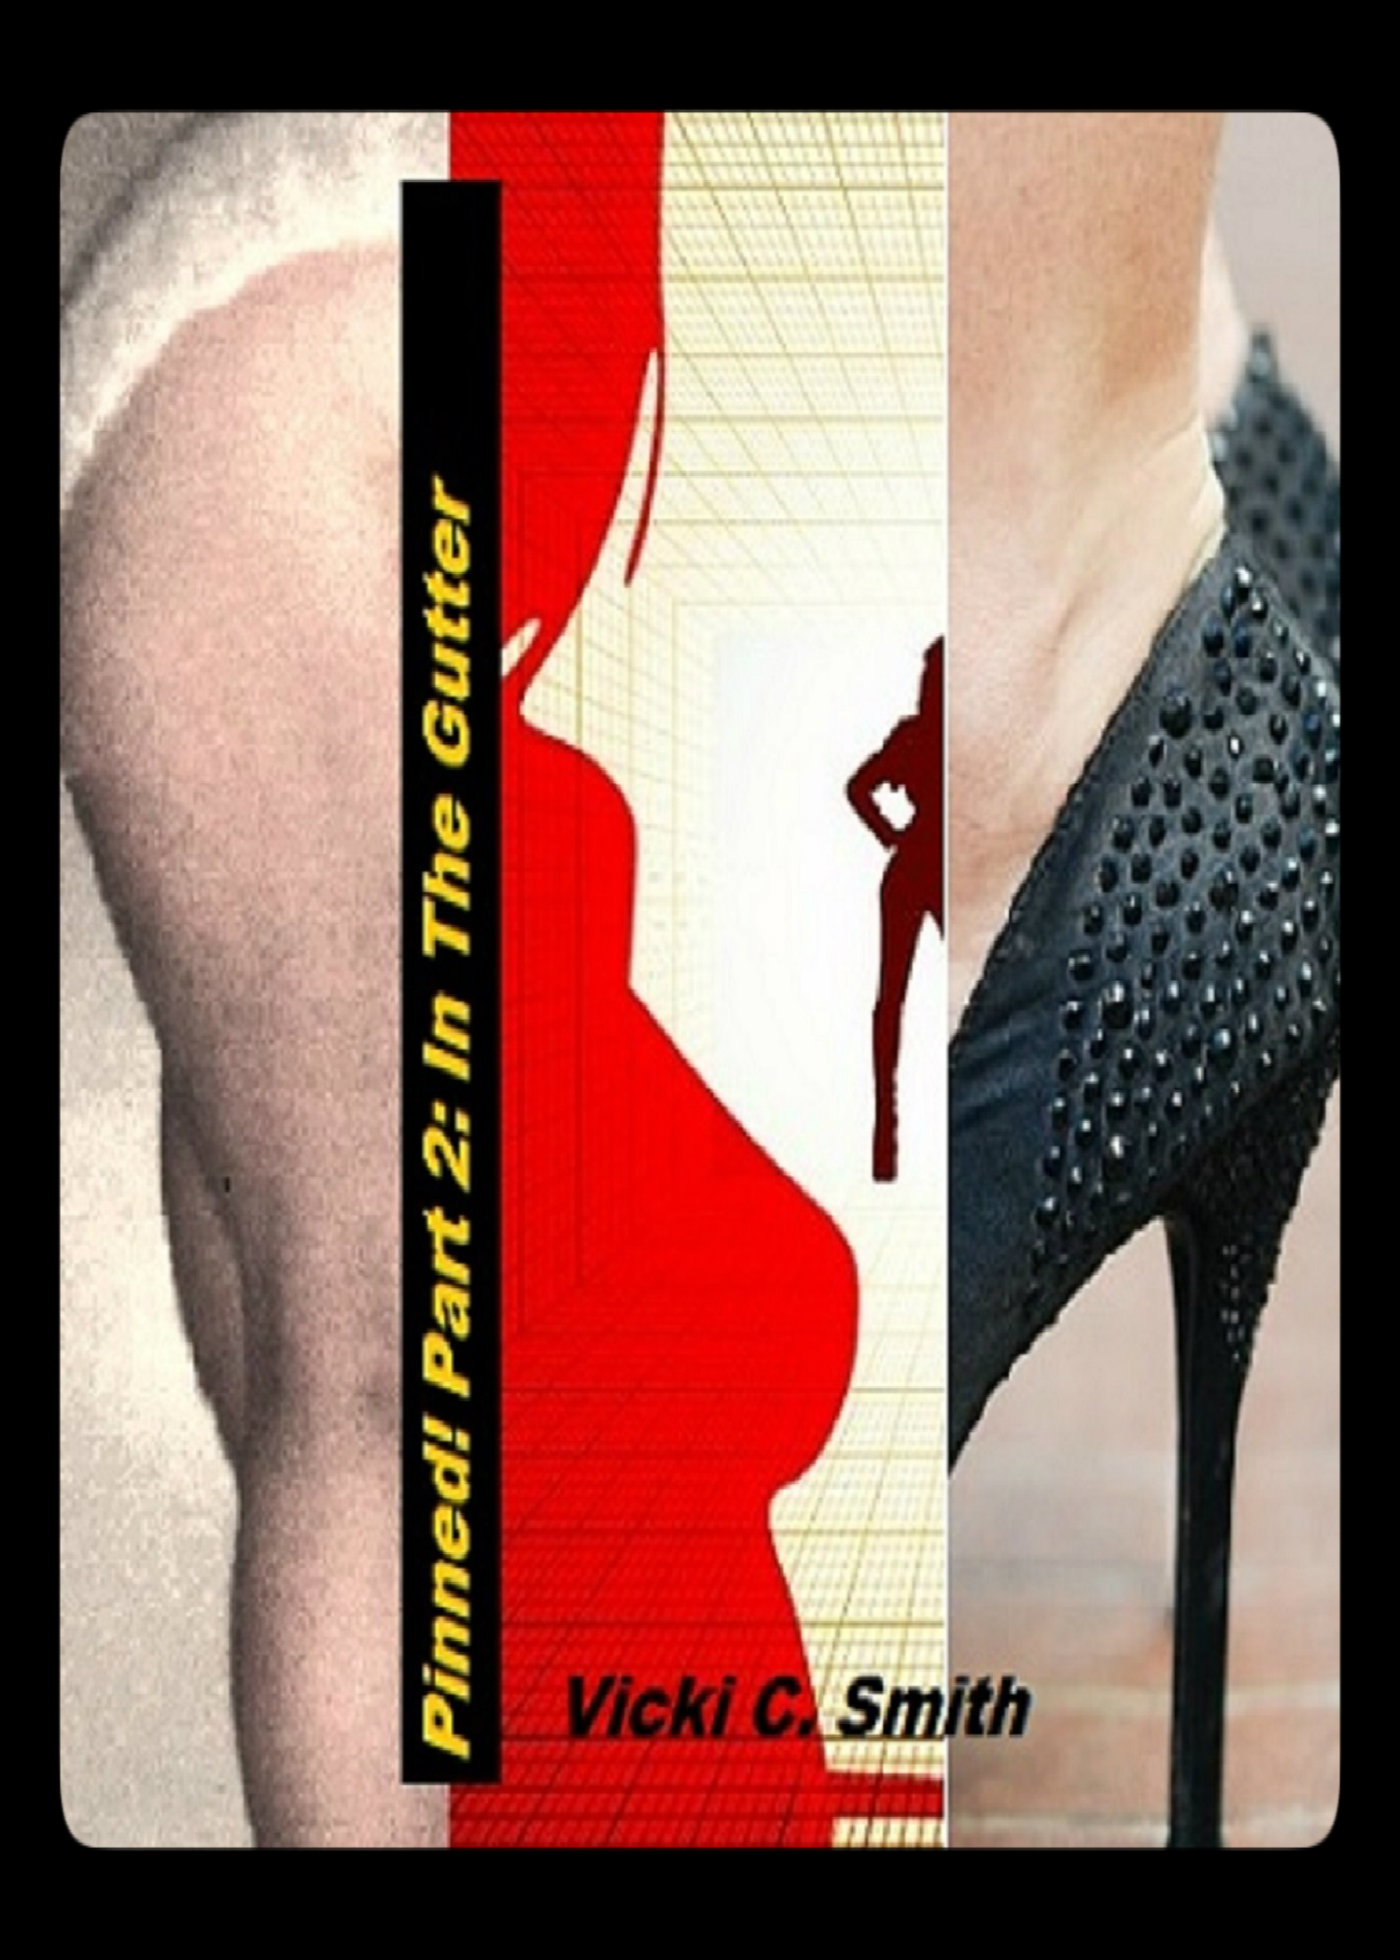 Pinned! Part 2: In the Gutter  by  Vicki C. Smith